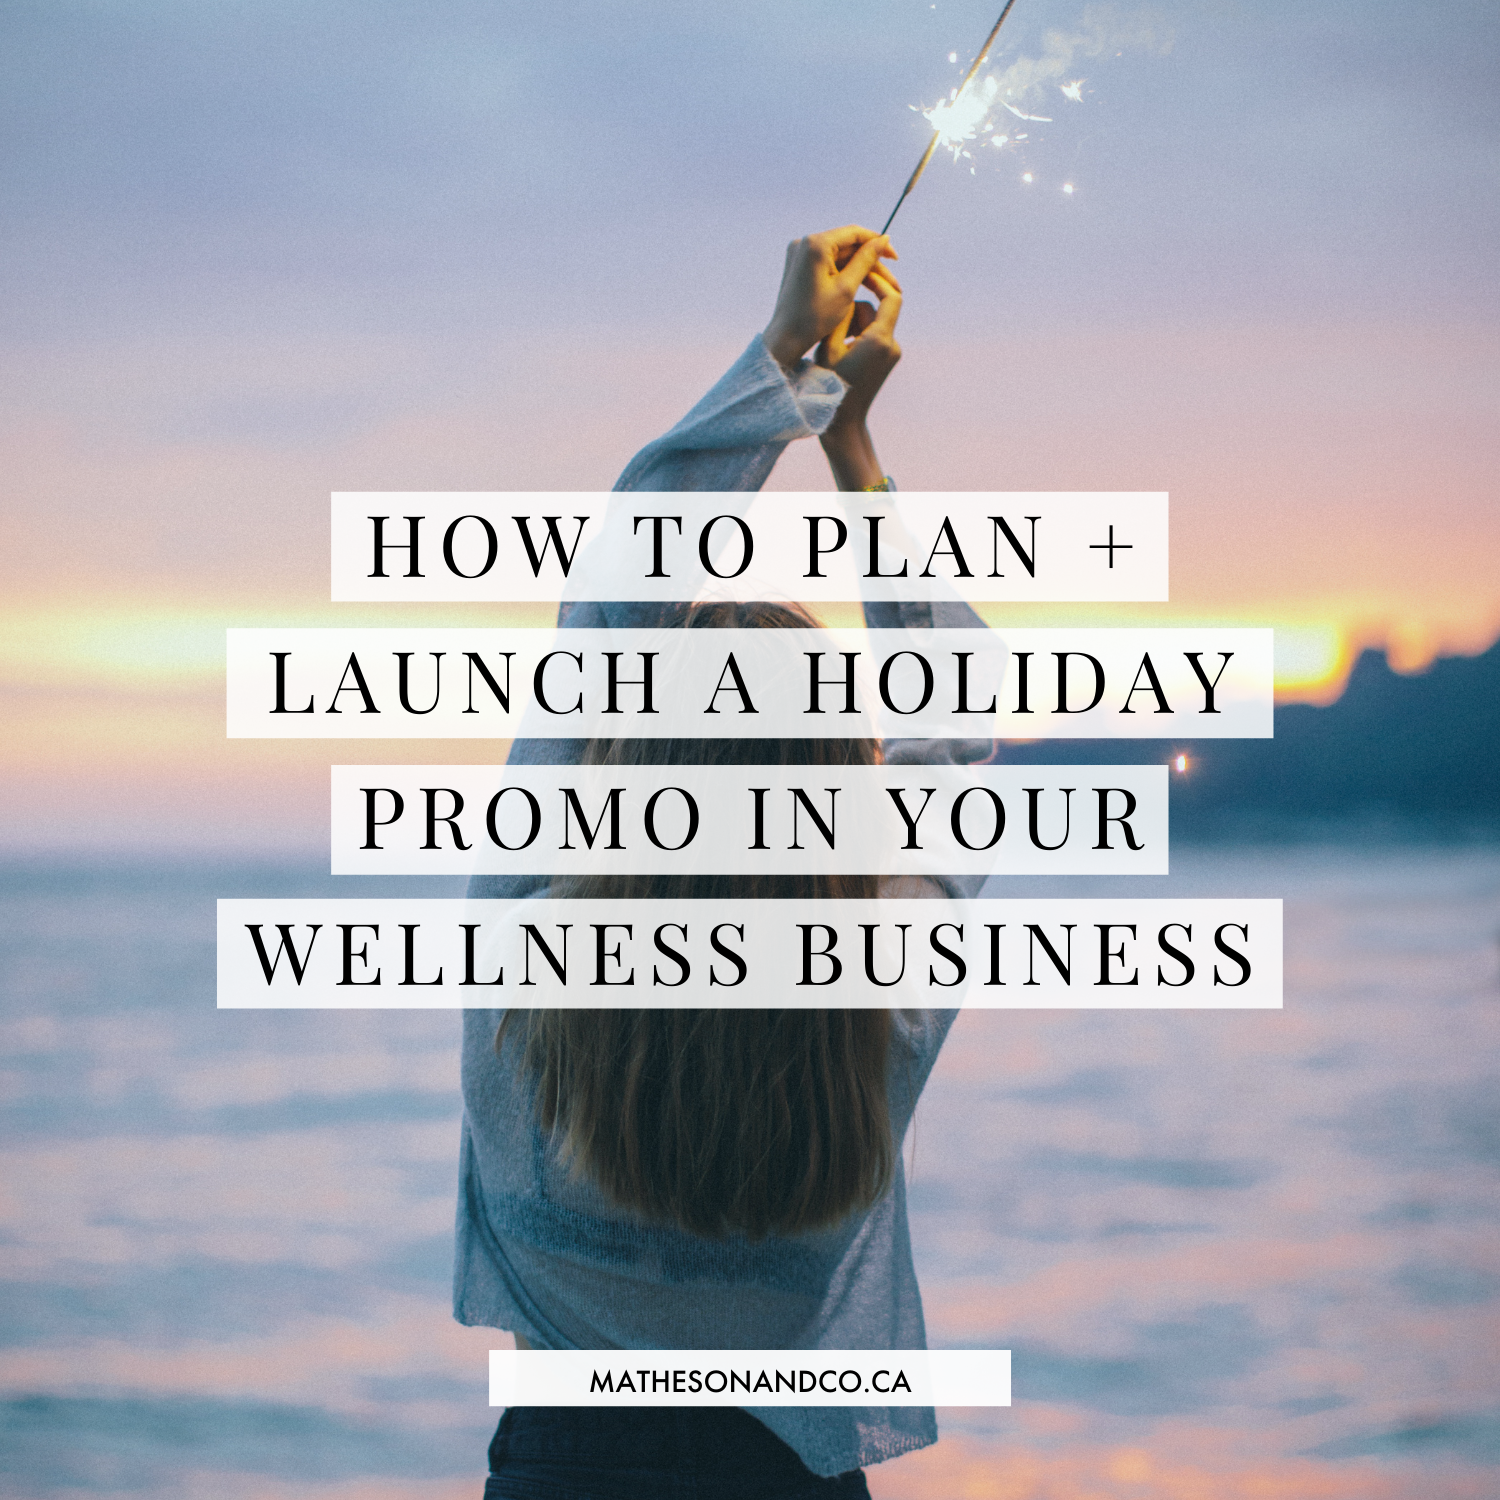 How to Plan + Launch a Holiday Promo in Your Wellness Business